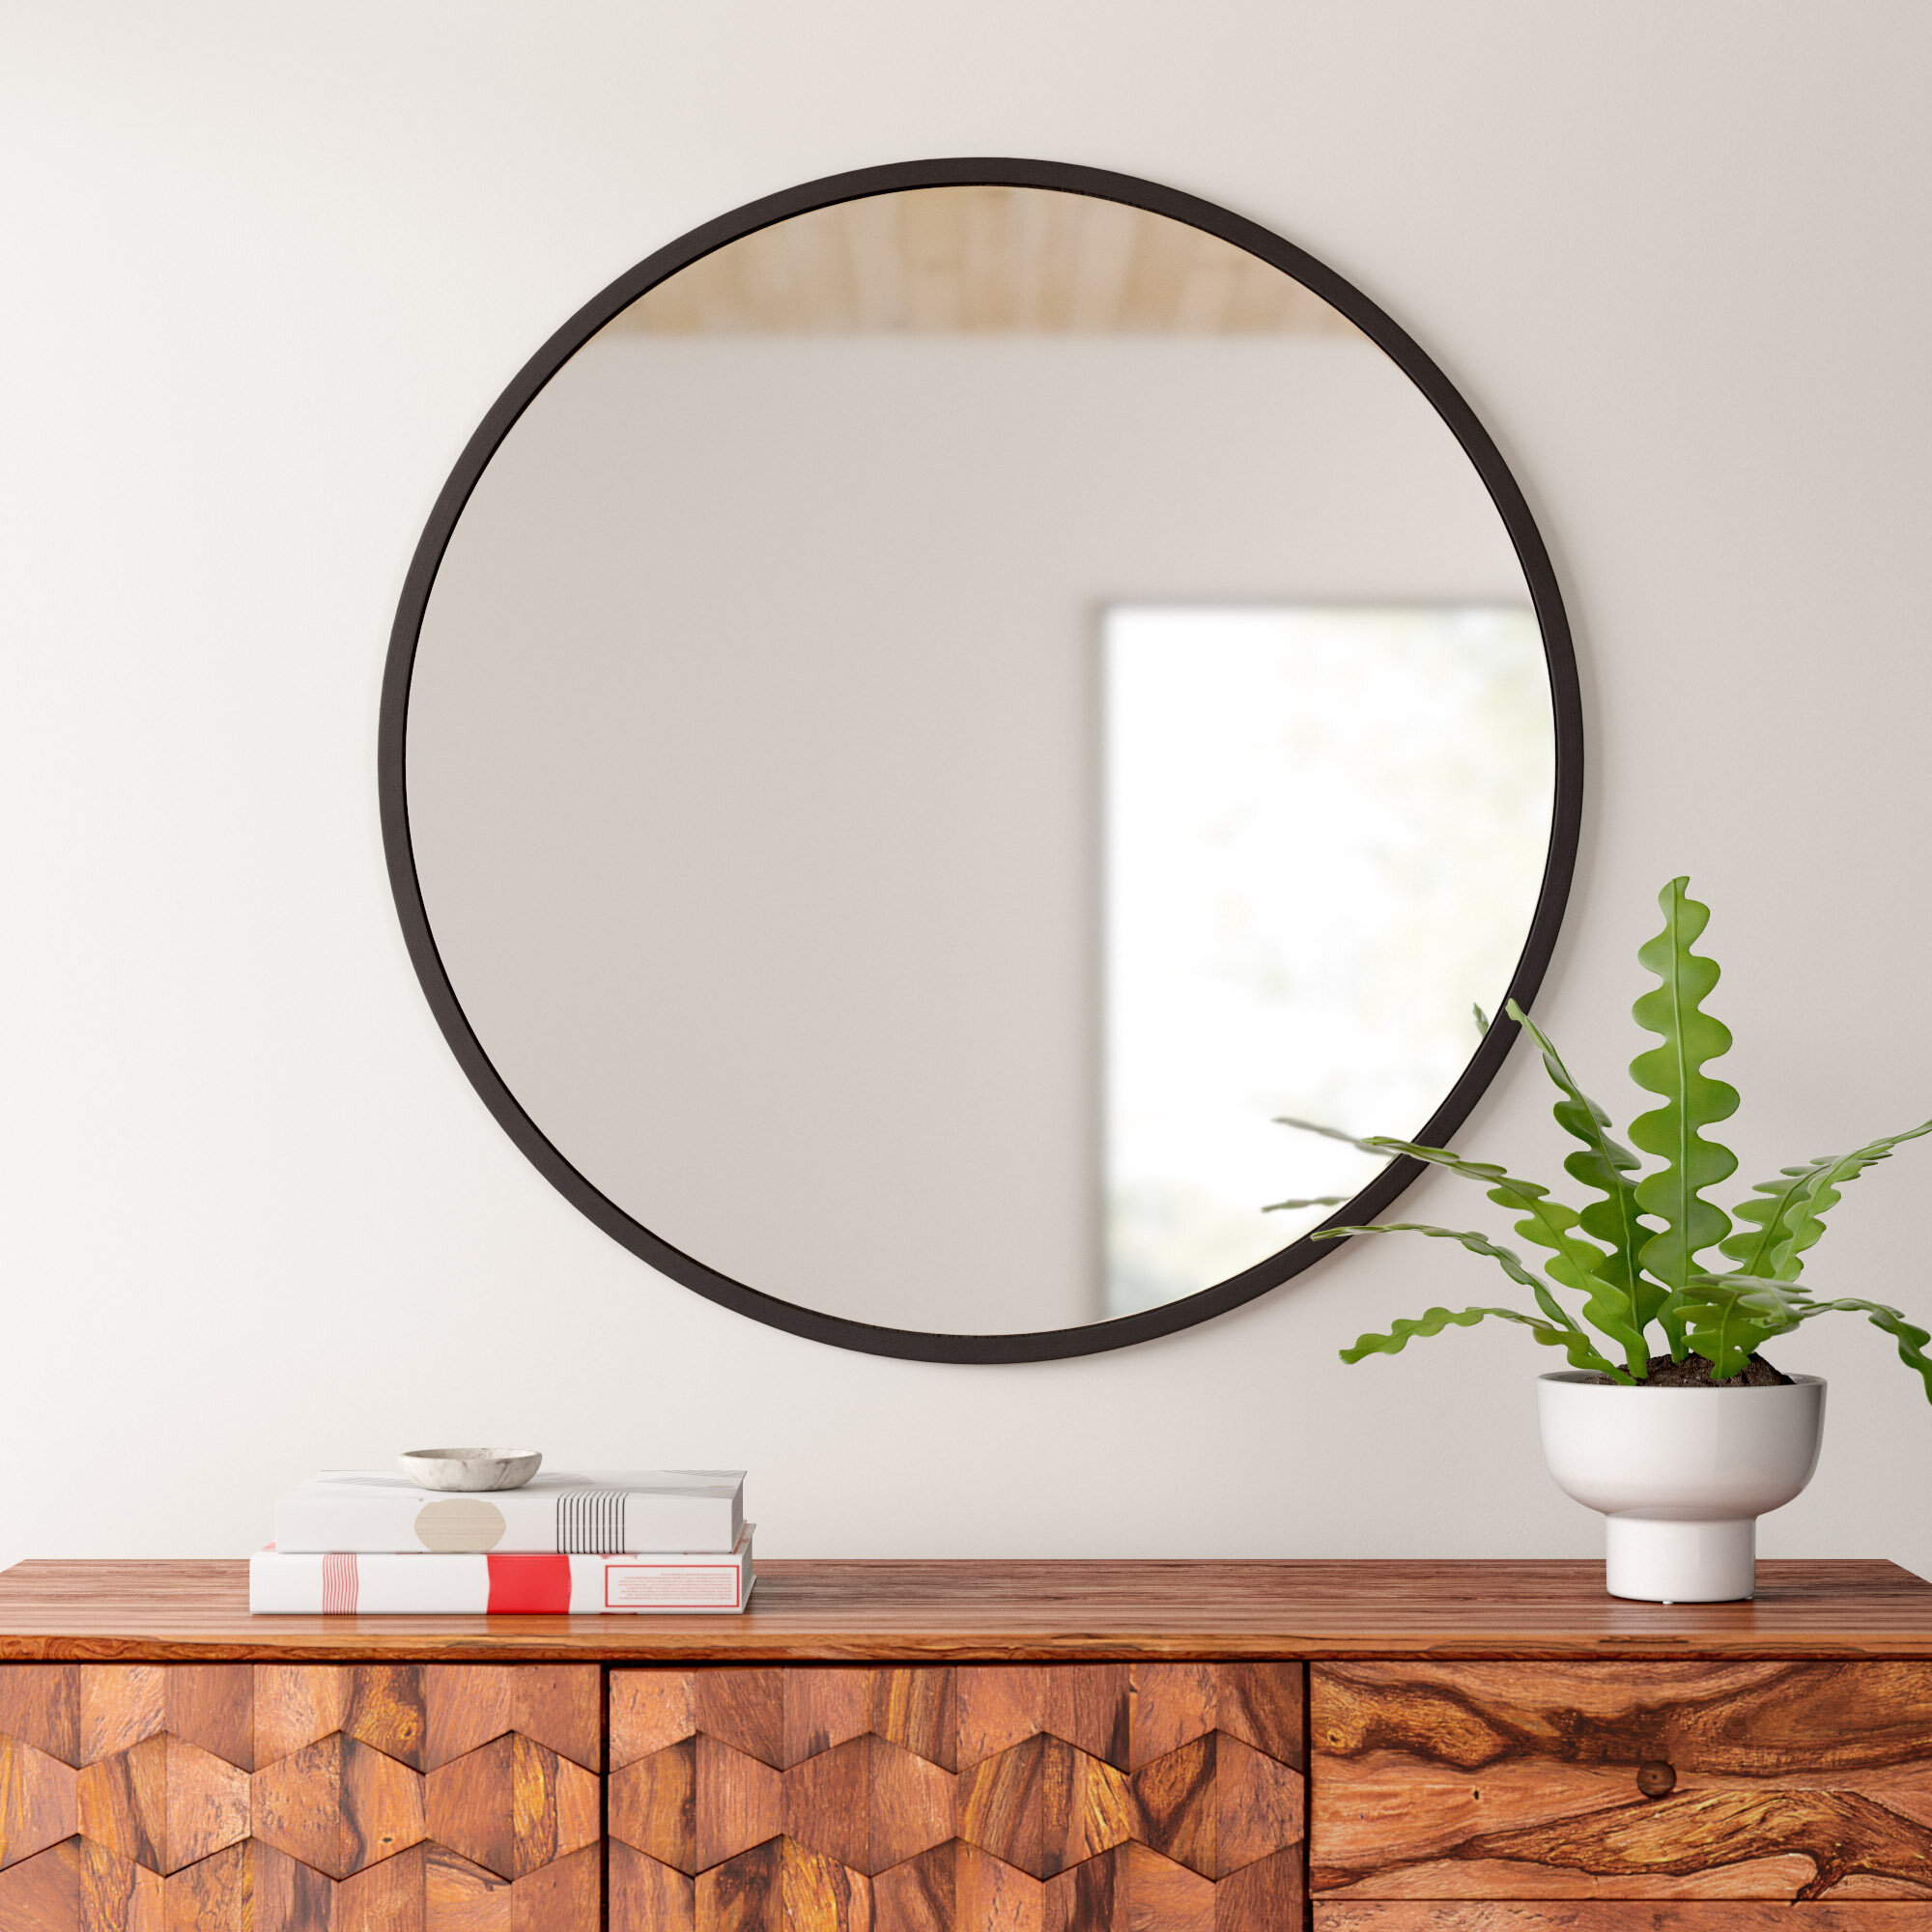 Umbra Hub Modern And Contemporary Accent Mirror With Levan Modern & Contemporary Accent Mirrors (Image 20 of 20)